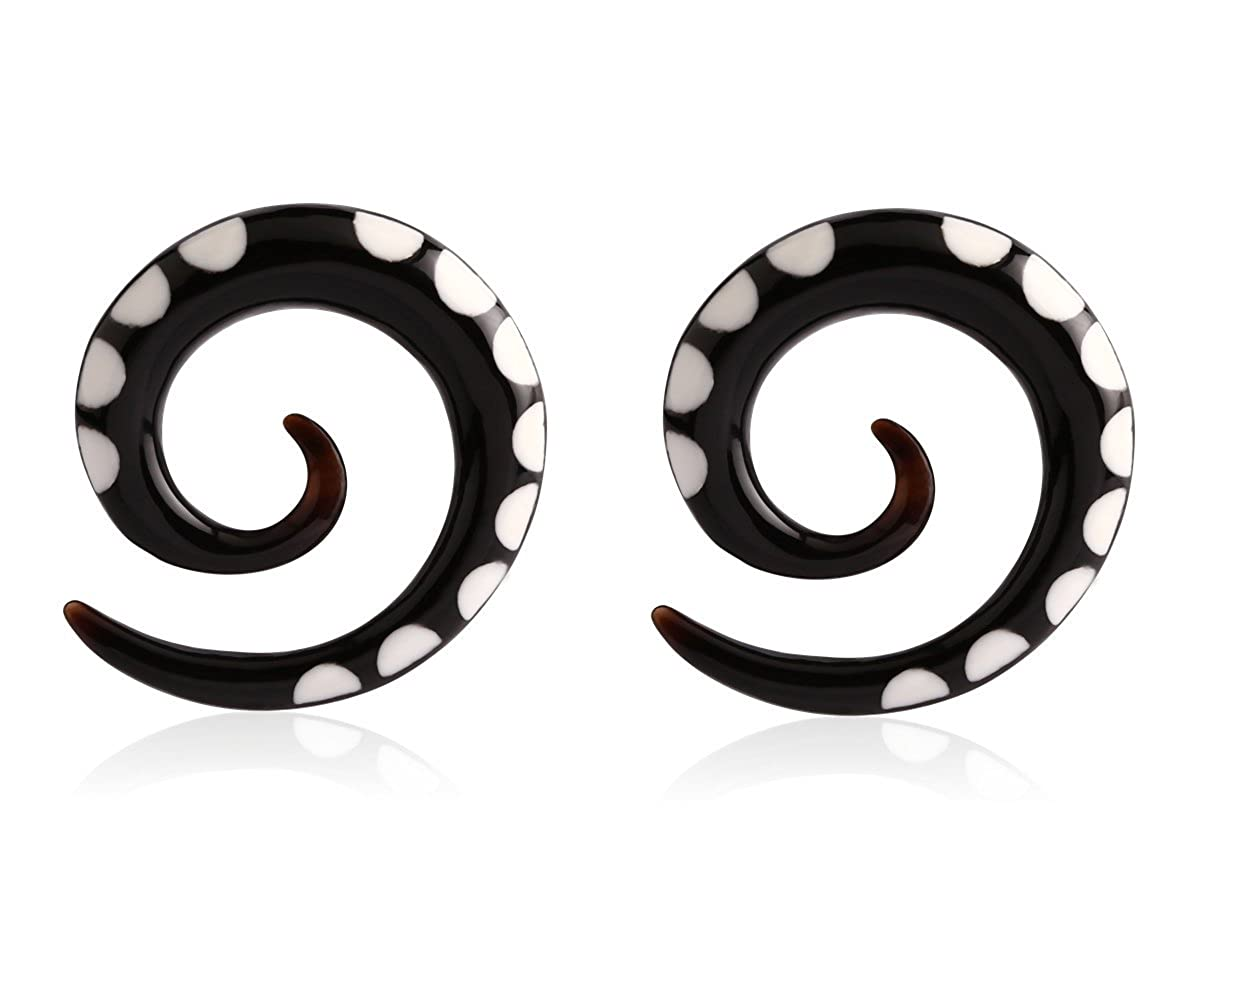 Holy Plug Body Piercing Jewelry Pair of 2 Painted Horn Ear Spiral 000g 0000g 6g 2g 0g